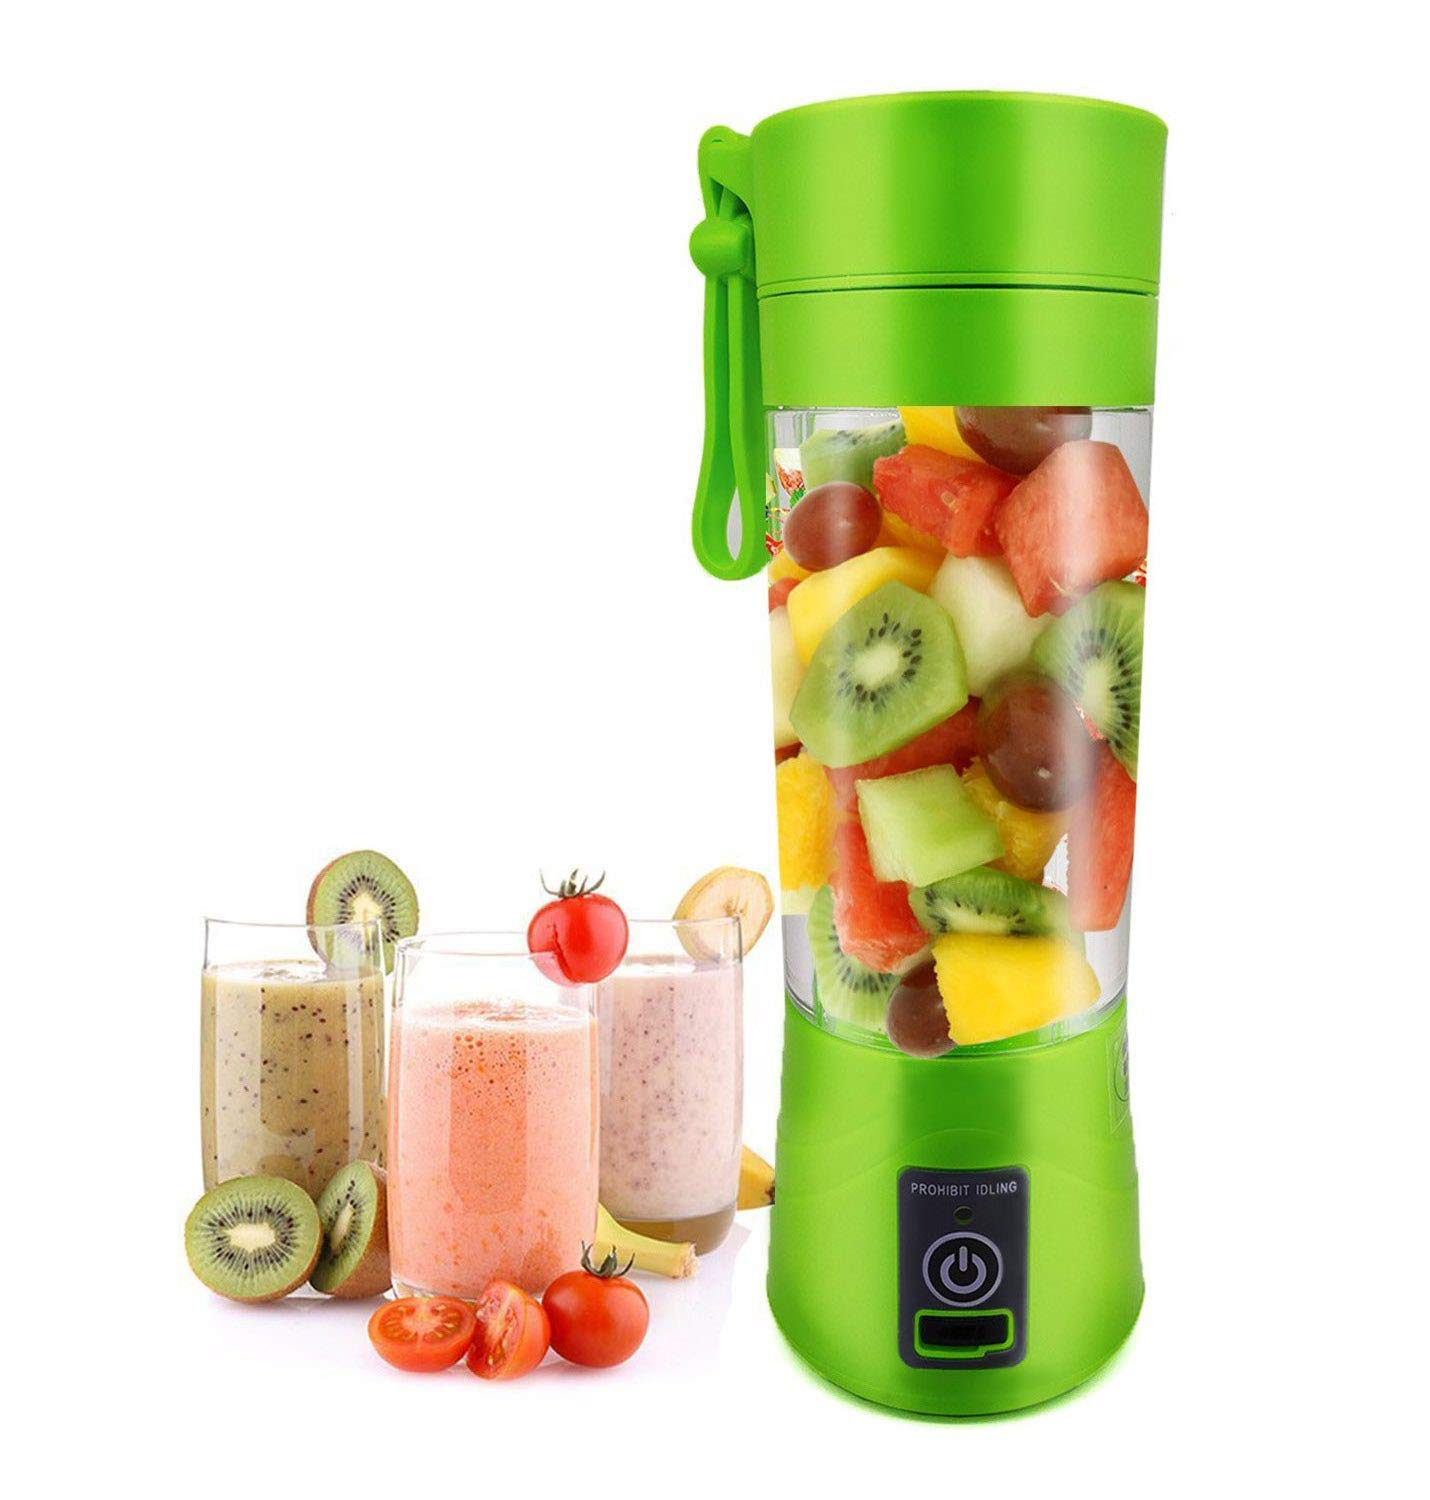 Portable USB Juicer Cup Fruit Mixing Machine Personal Size Electric Rechargeable Mixer Water Bottle 380ml with USB Charger Cable USB Mixer